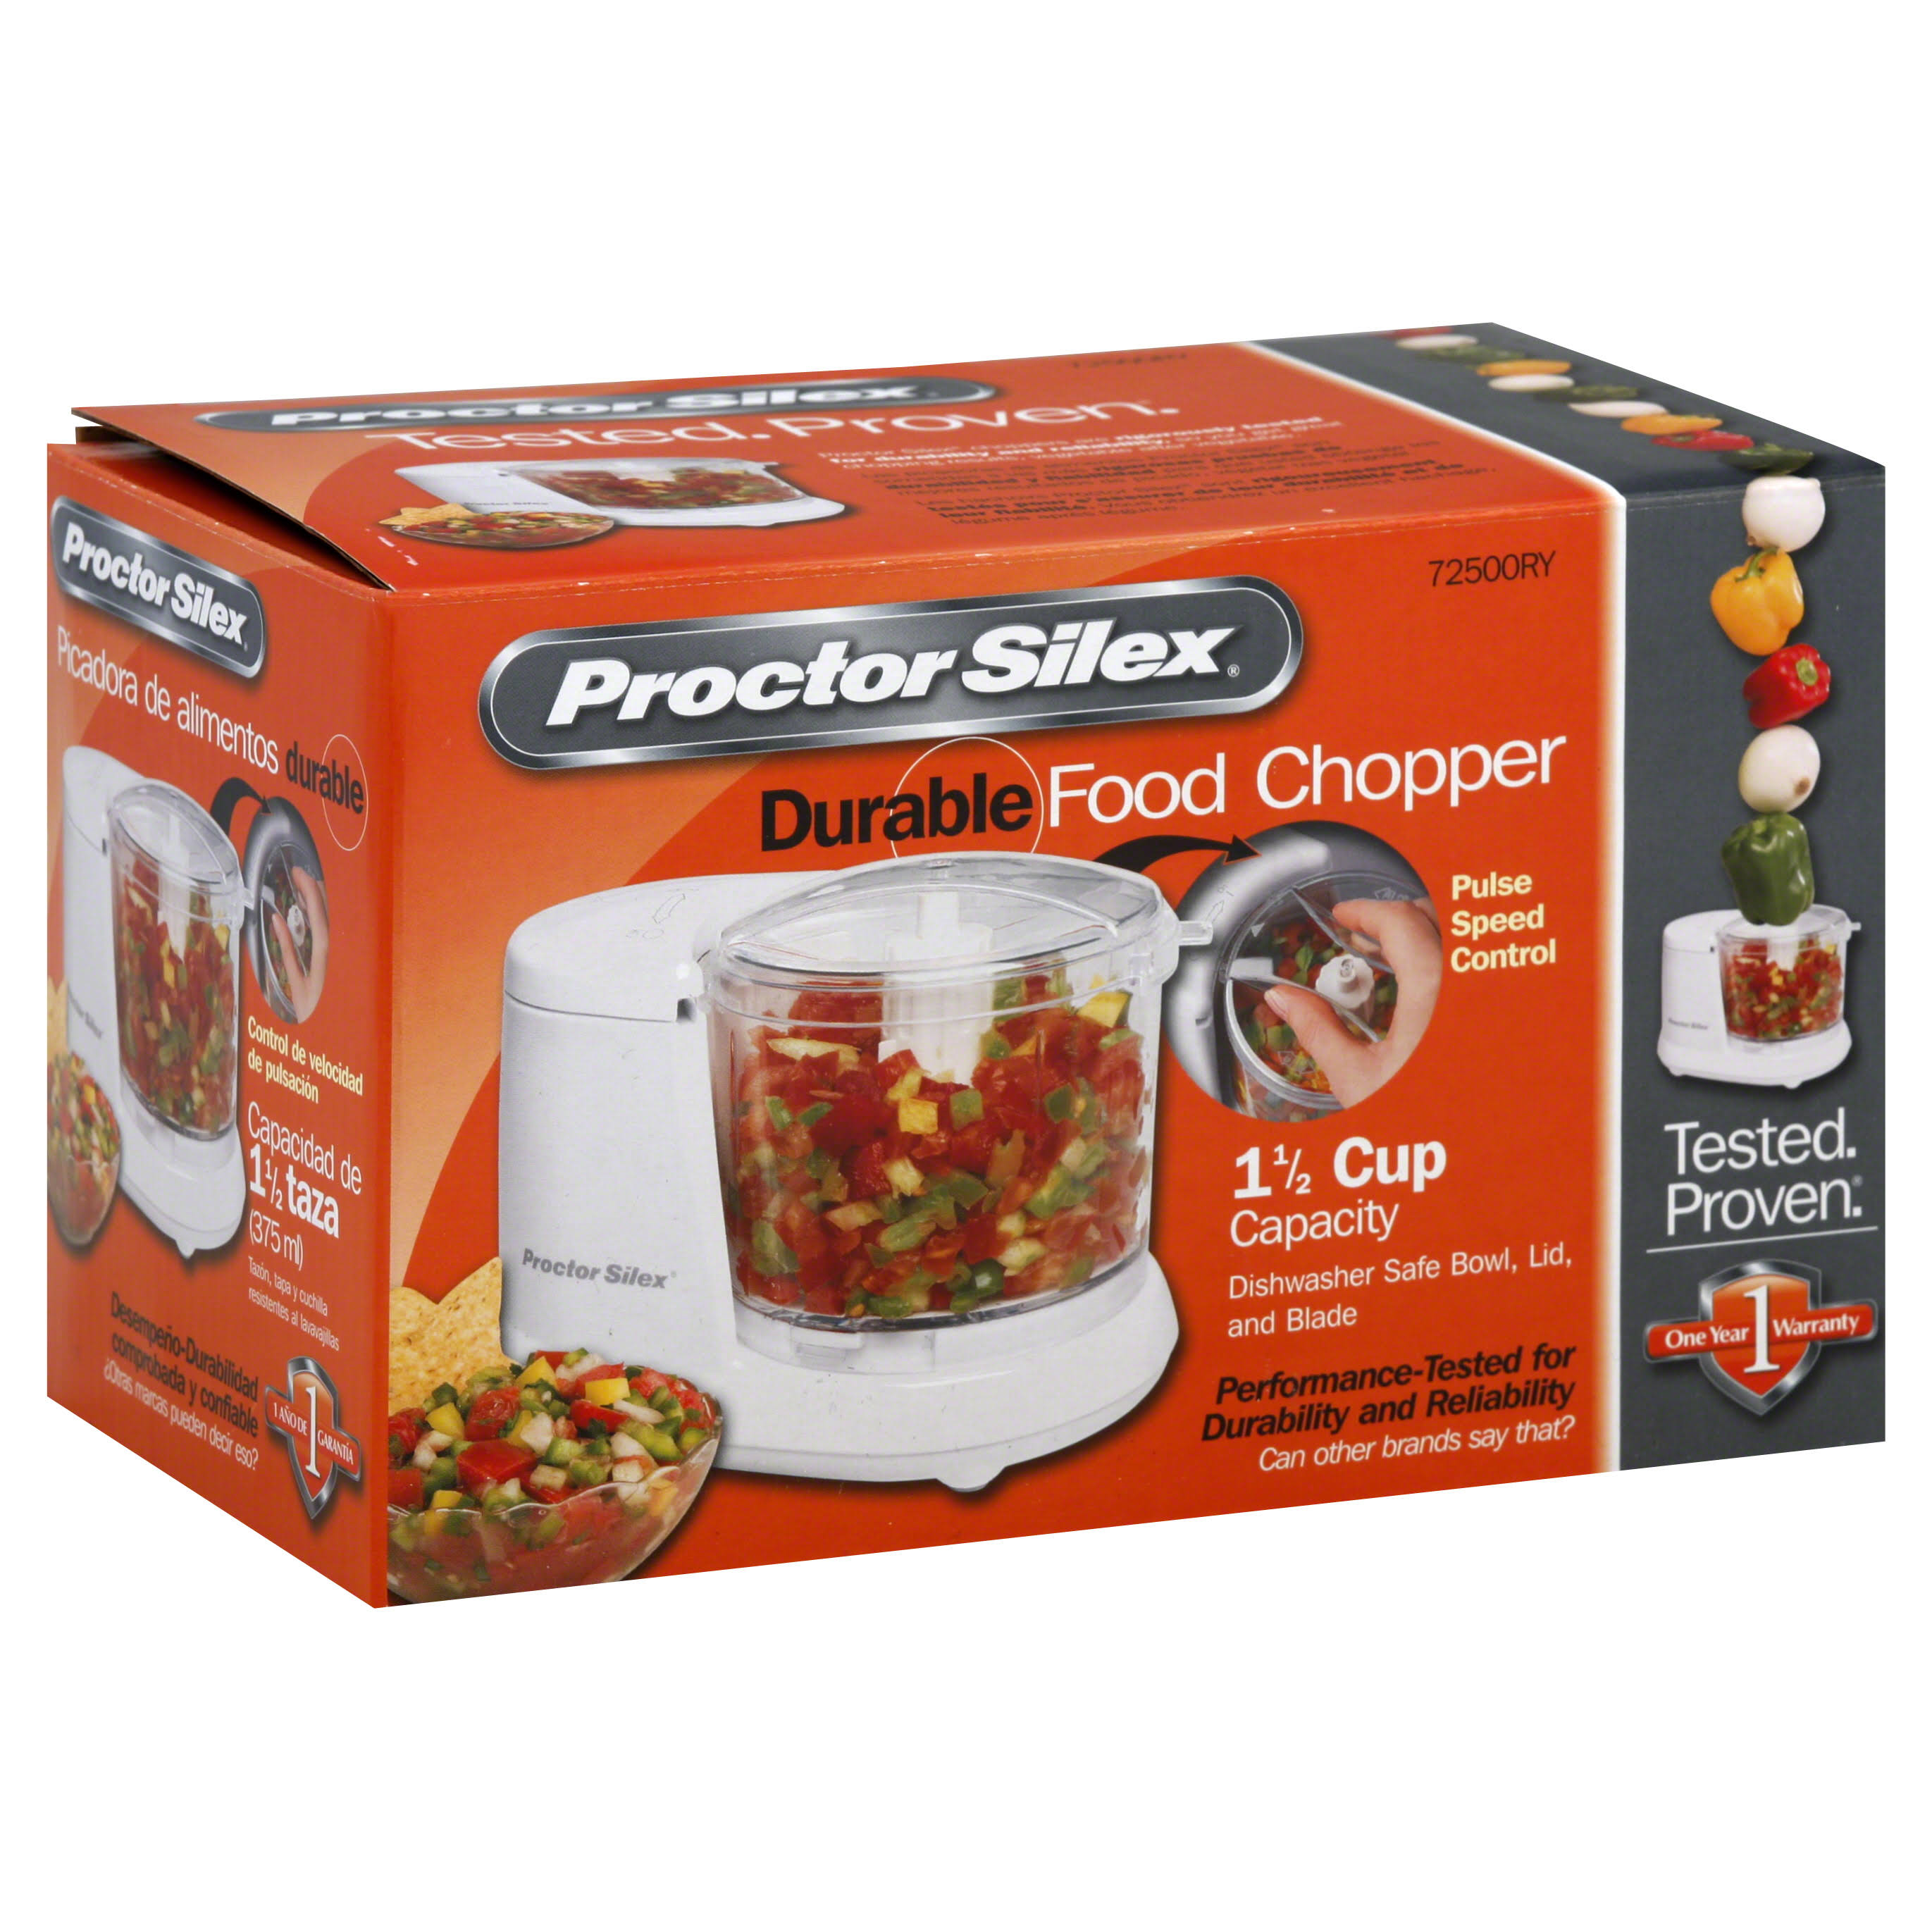 Proctor Silex Food Chopper - 1-1/2 Cup